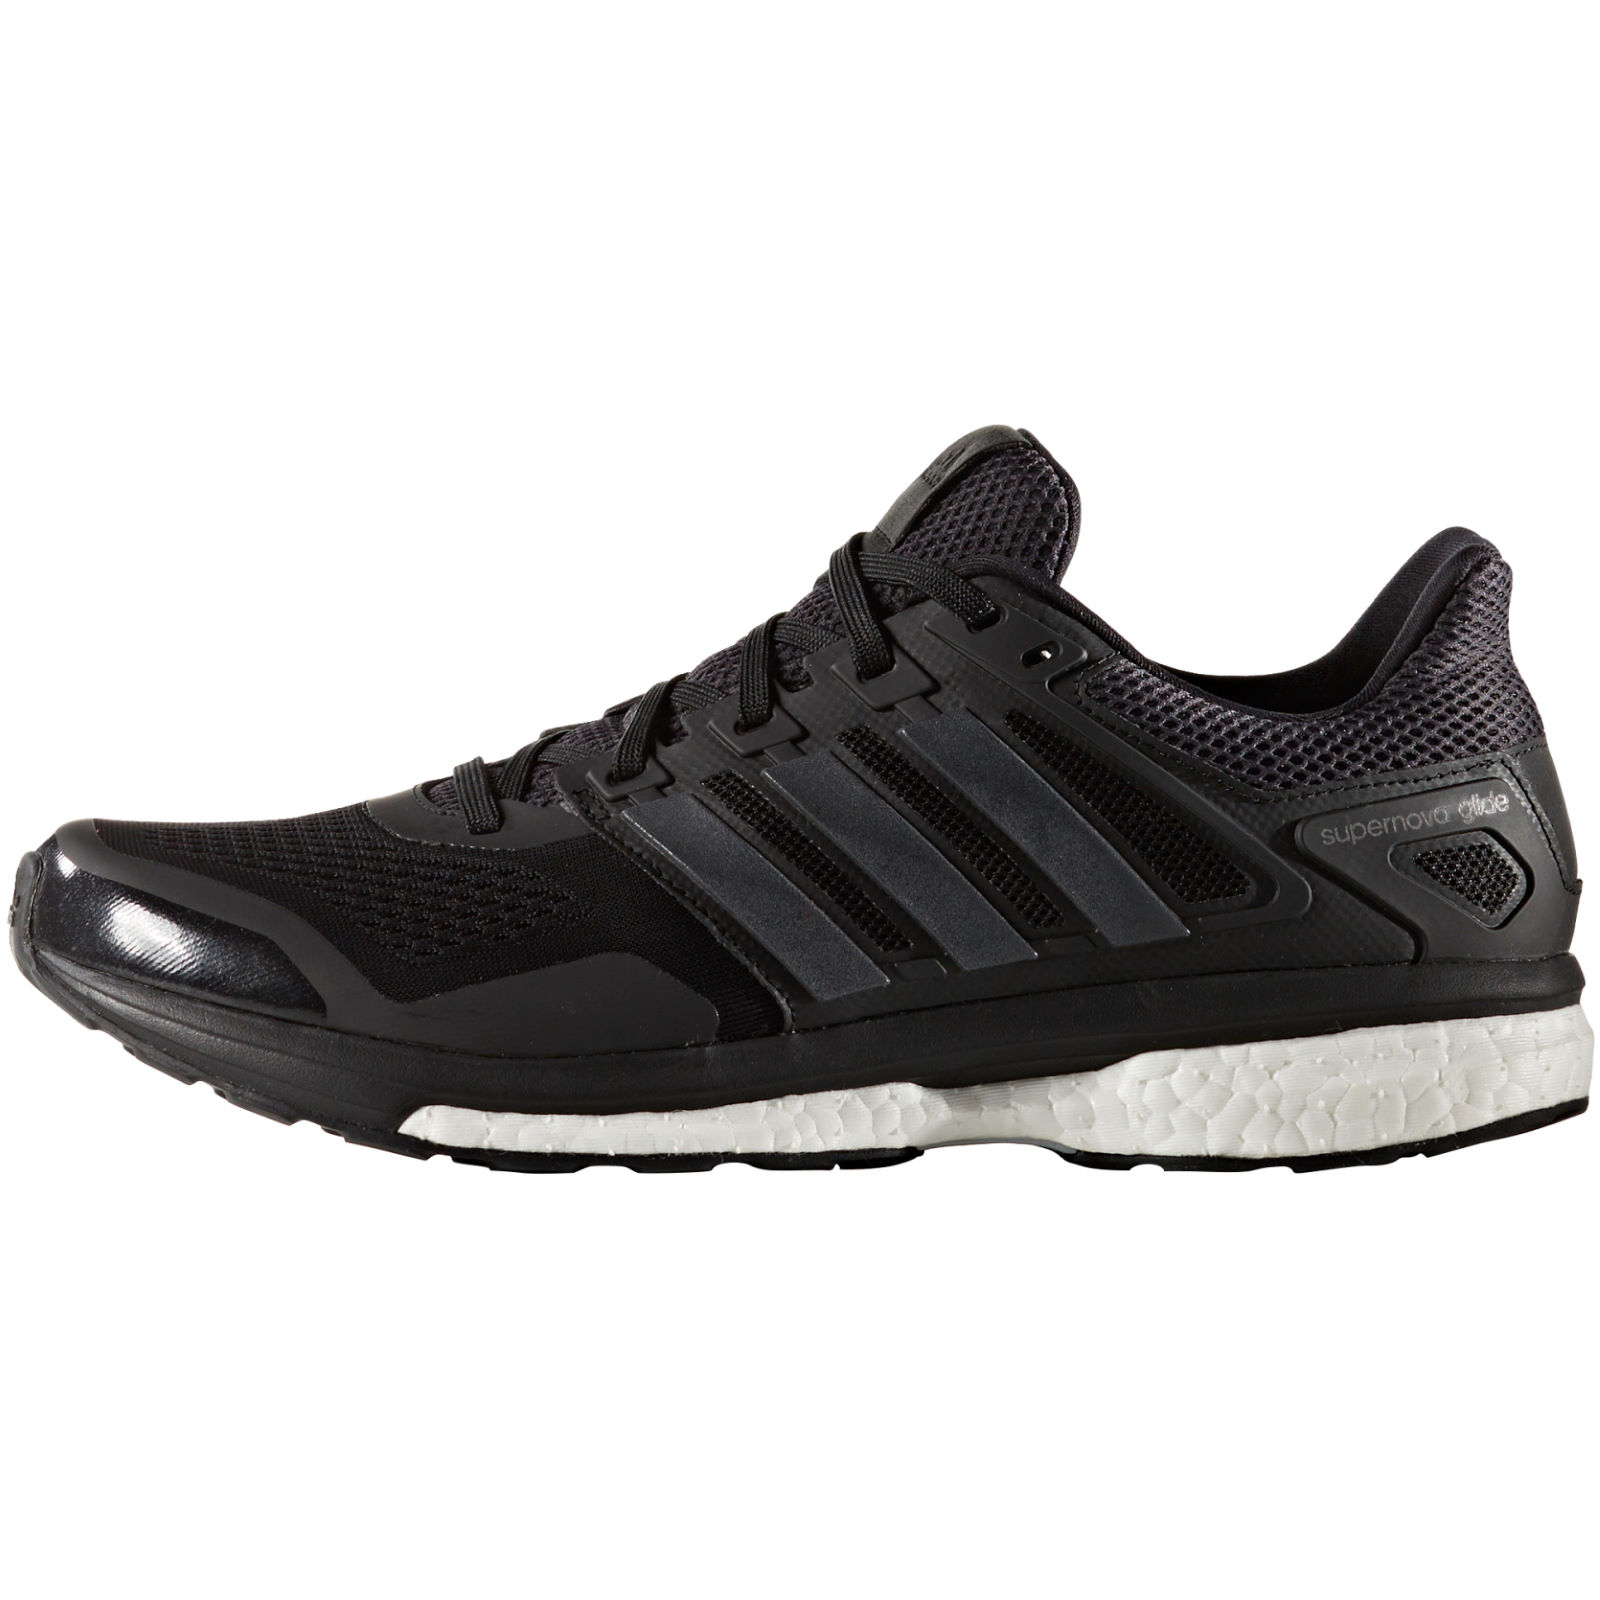 adidas supernova glide boost 8 shoes ss16 cushion running shoes. Black Bedroom Furniture Sets. Home Design Ideas